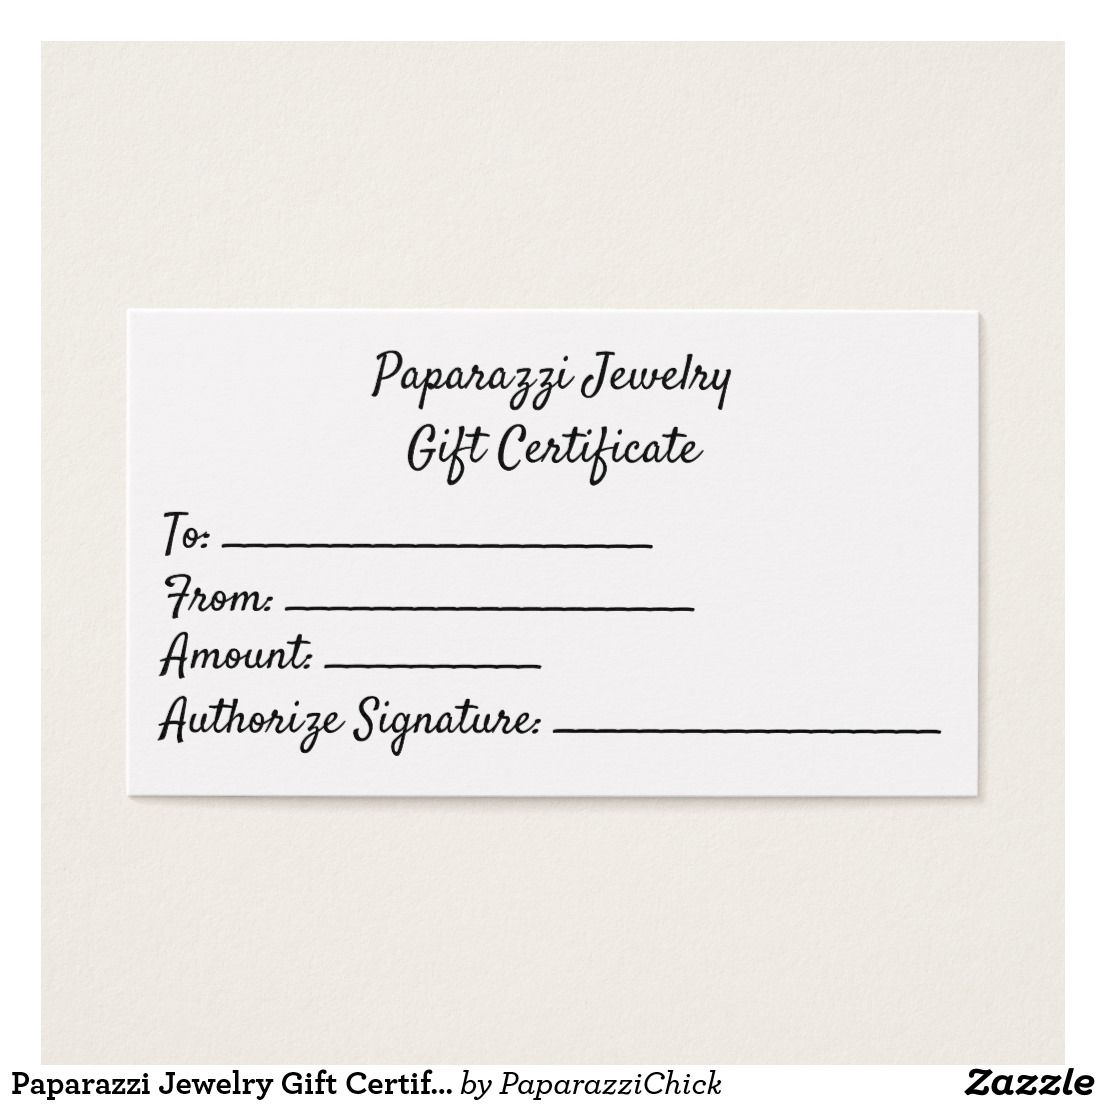 Paparazzi Jewelry Gift Certificates Business Cards | Paparazzi ...